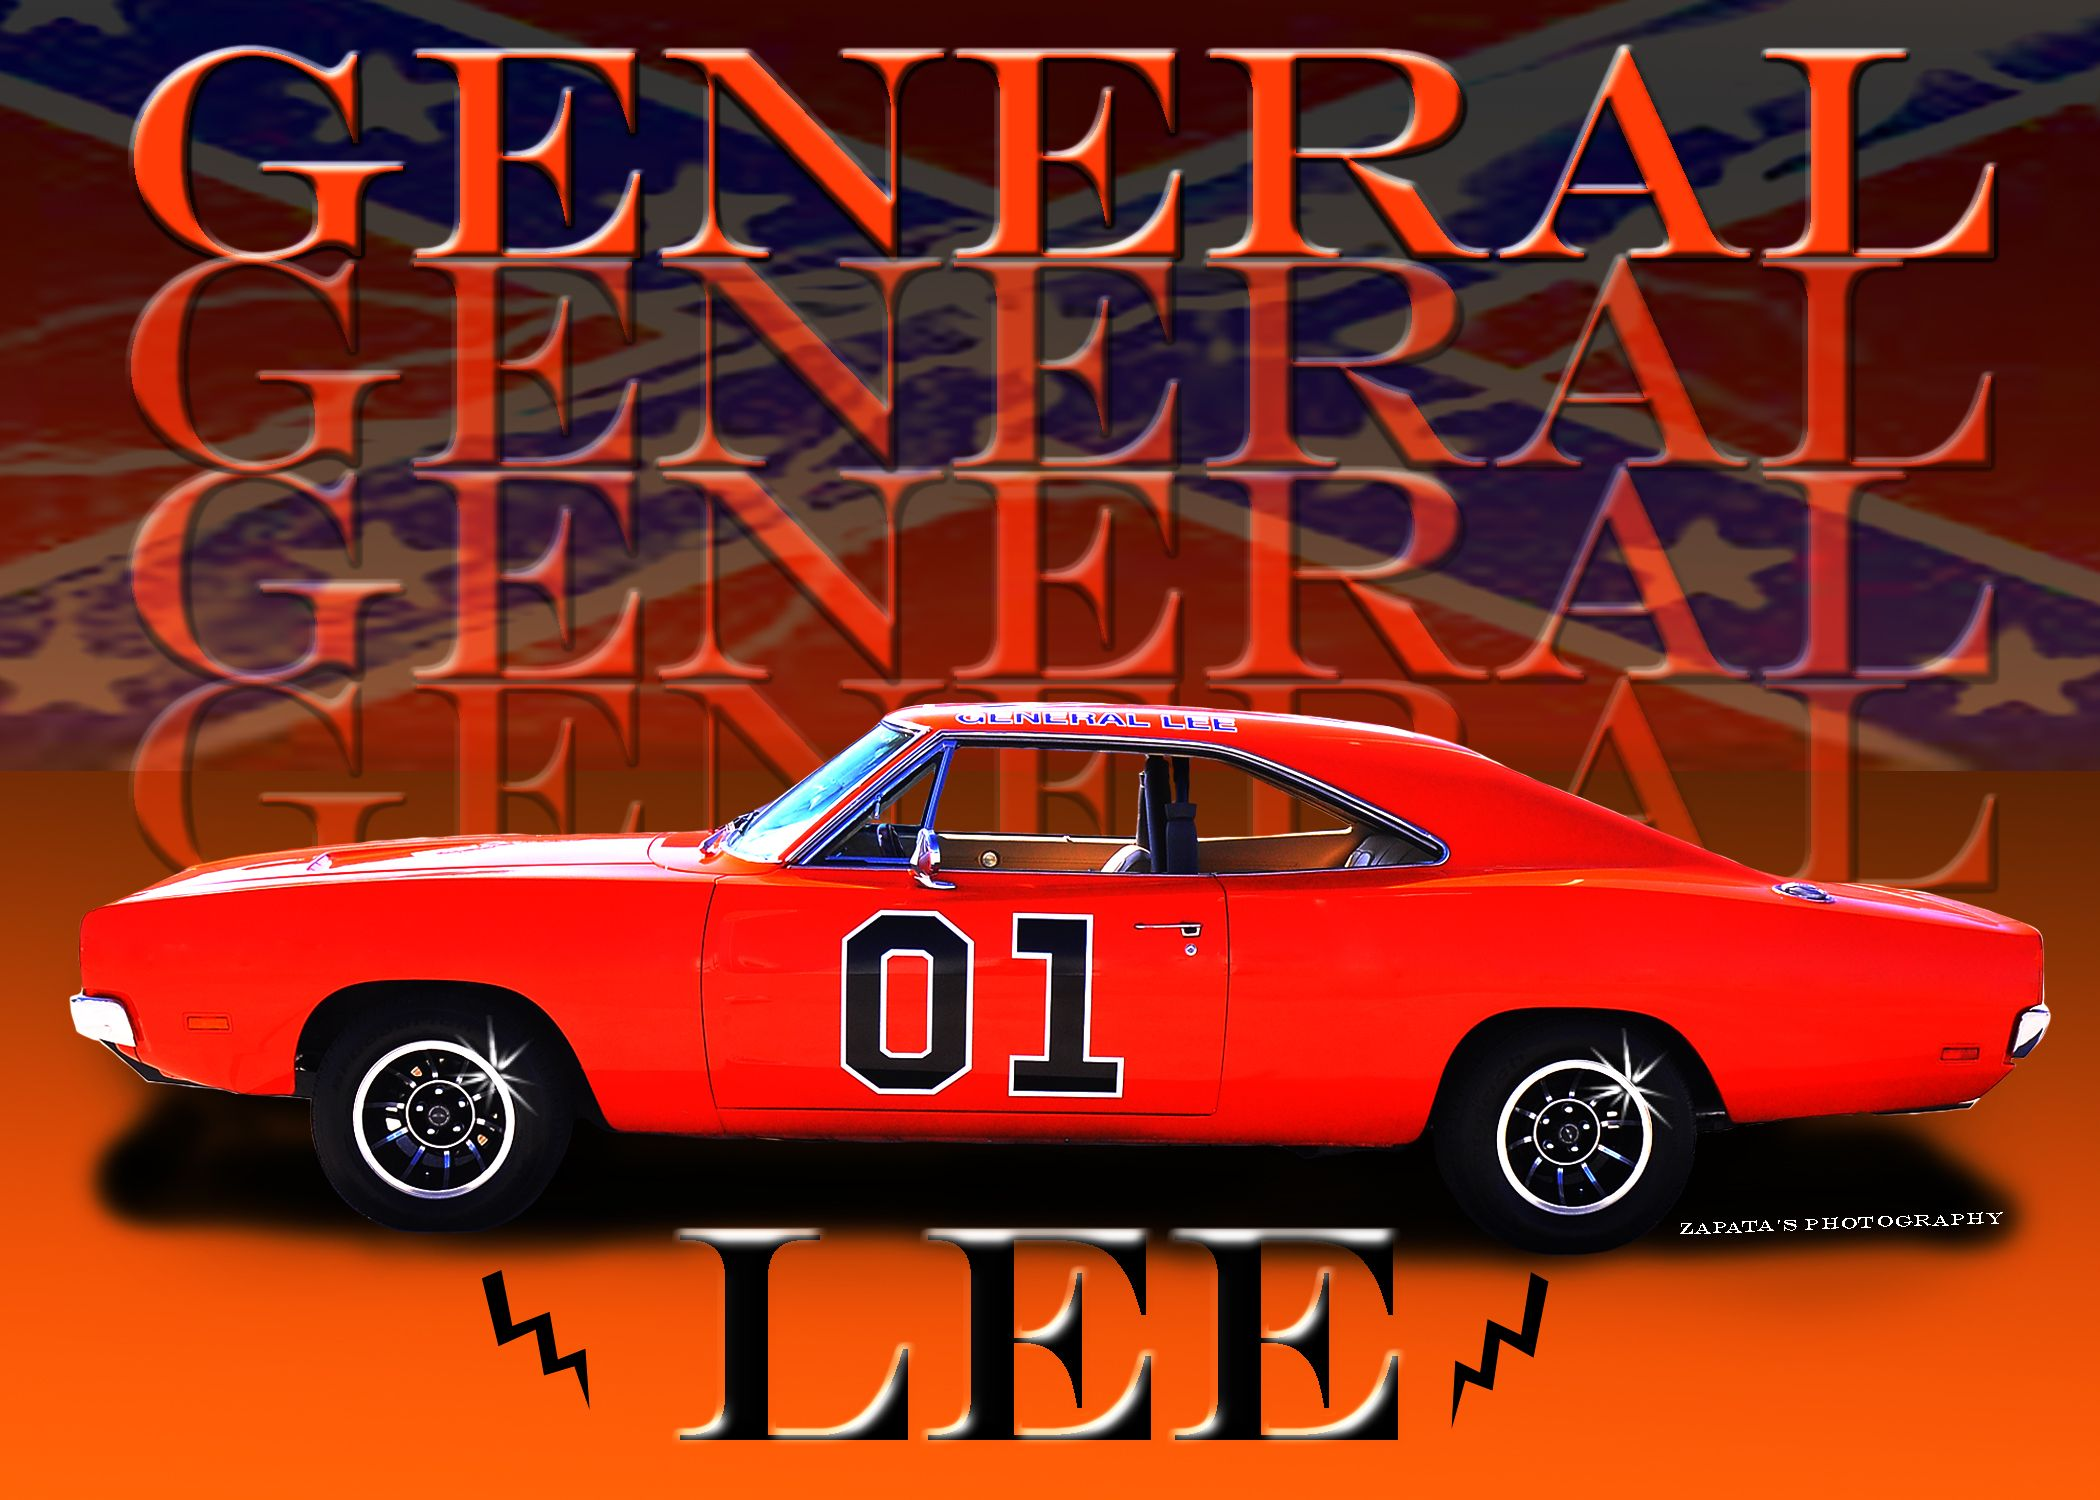 1969 Dodge Charger General Lee Wallpapers Hd Free 99390 General Lee General Lee Car Dukes Of Hazard